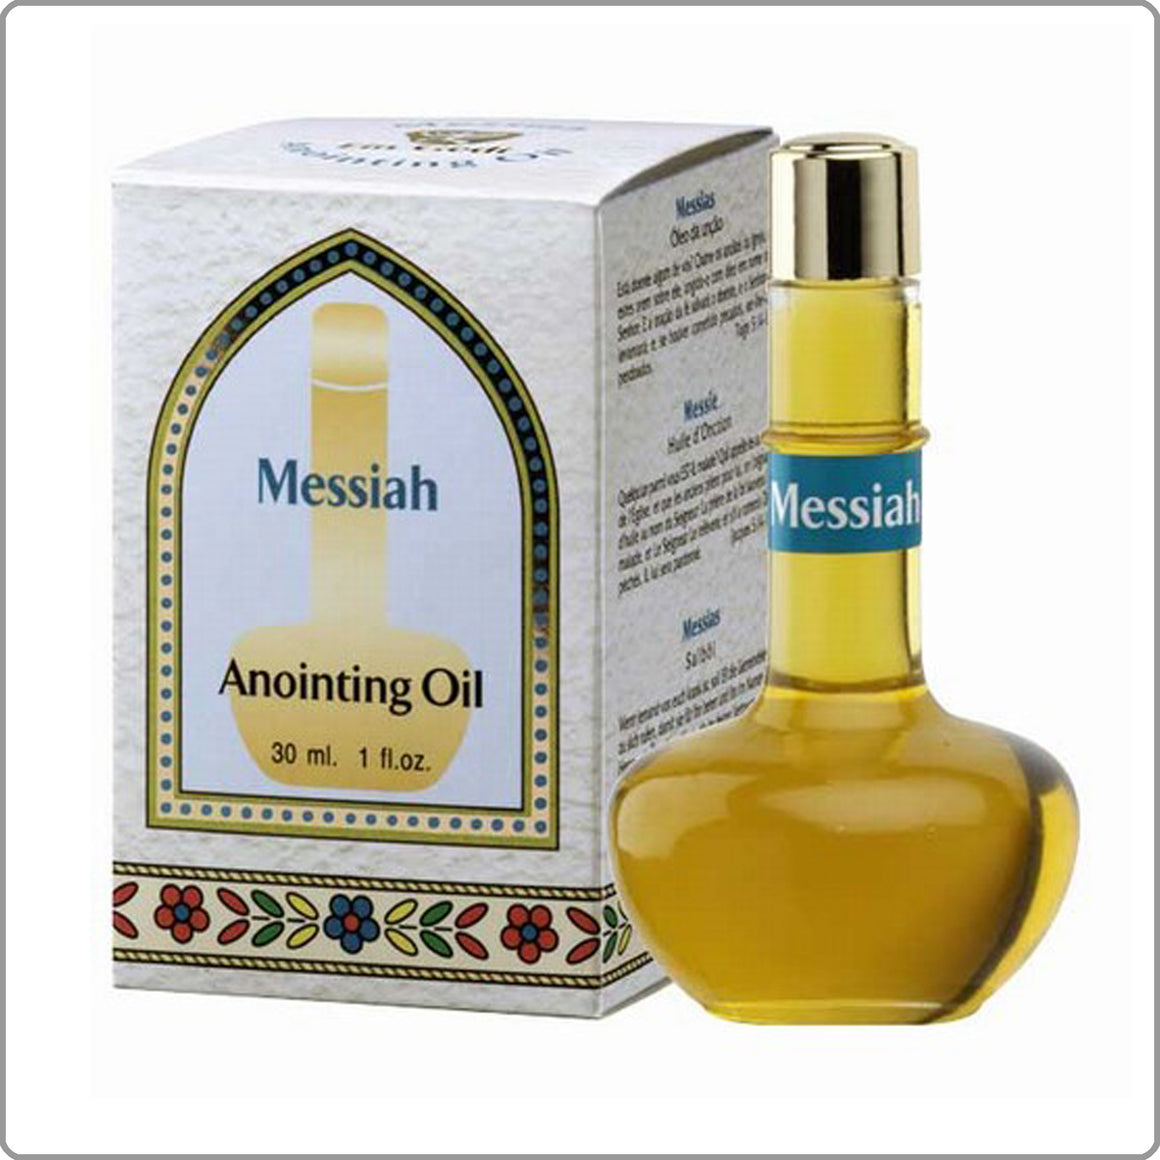 Messiah - Anointing Oil 30 ml.